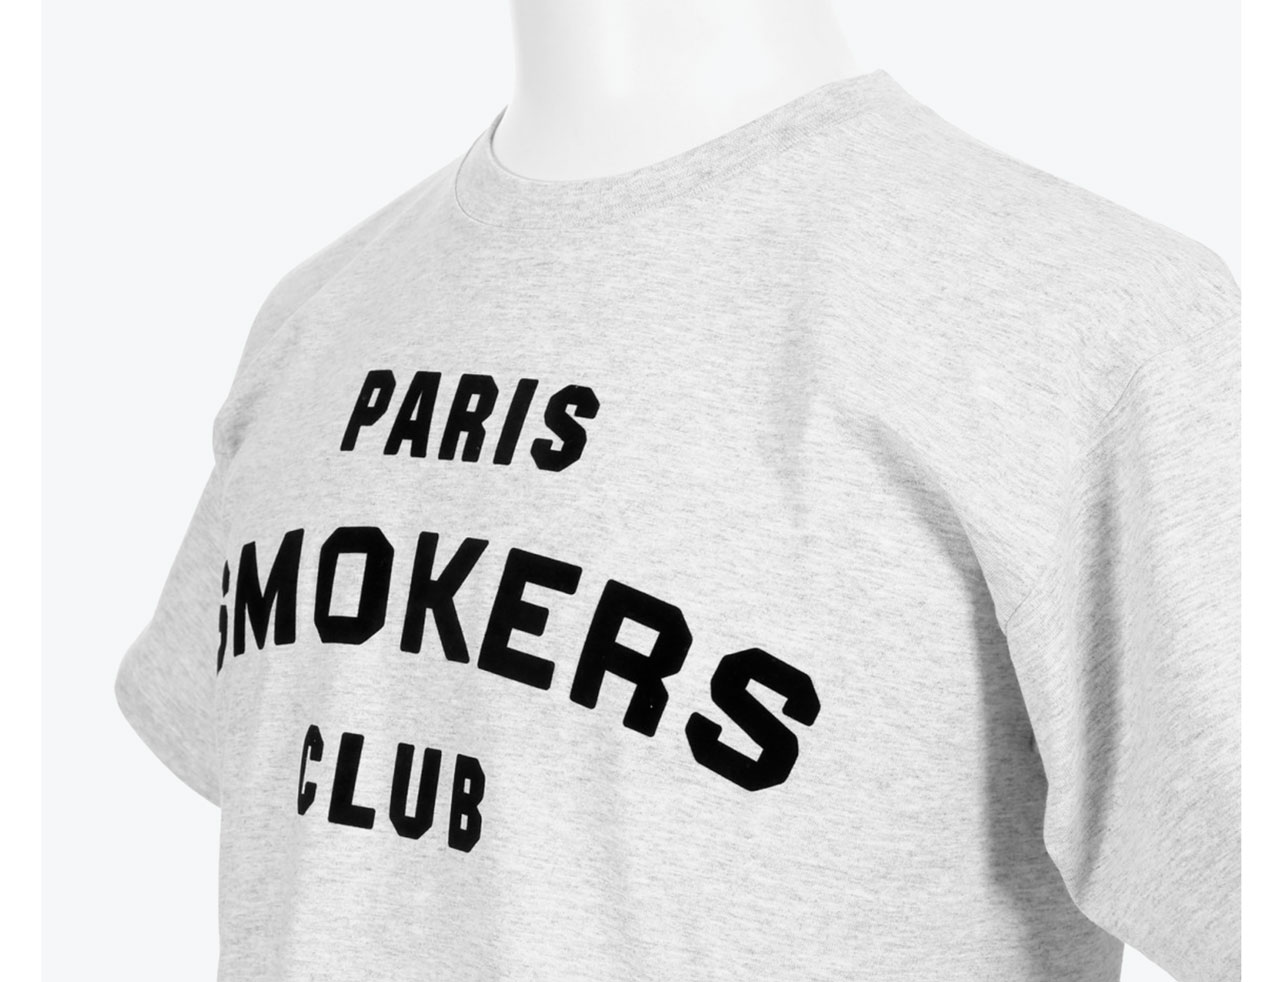 Paris Smokers Club - Le Bouclard